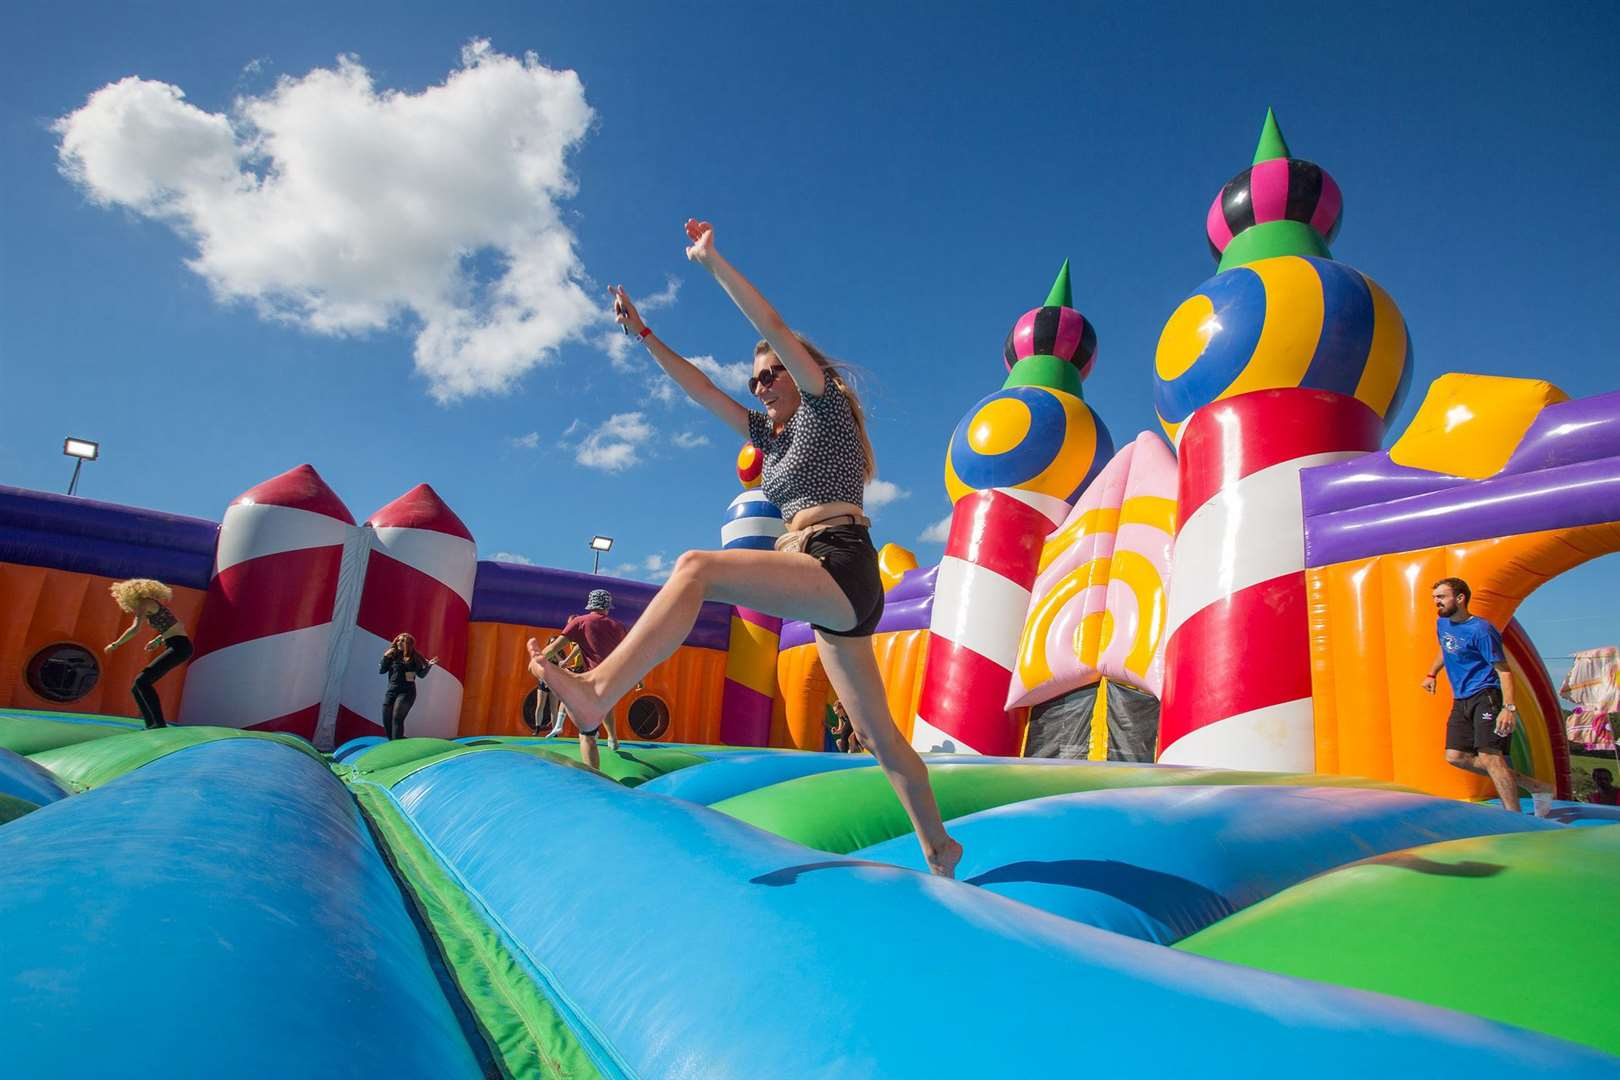 The world's biggest bouncy castle is back!